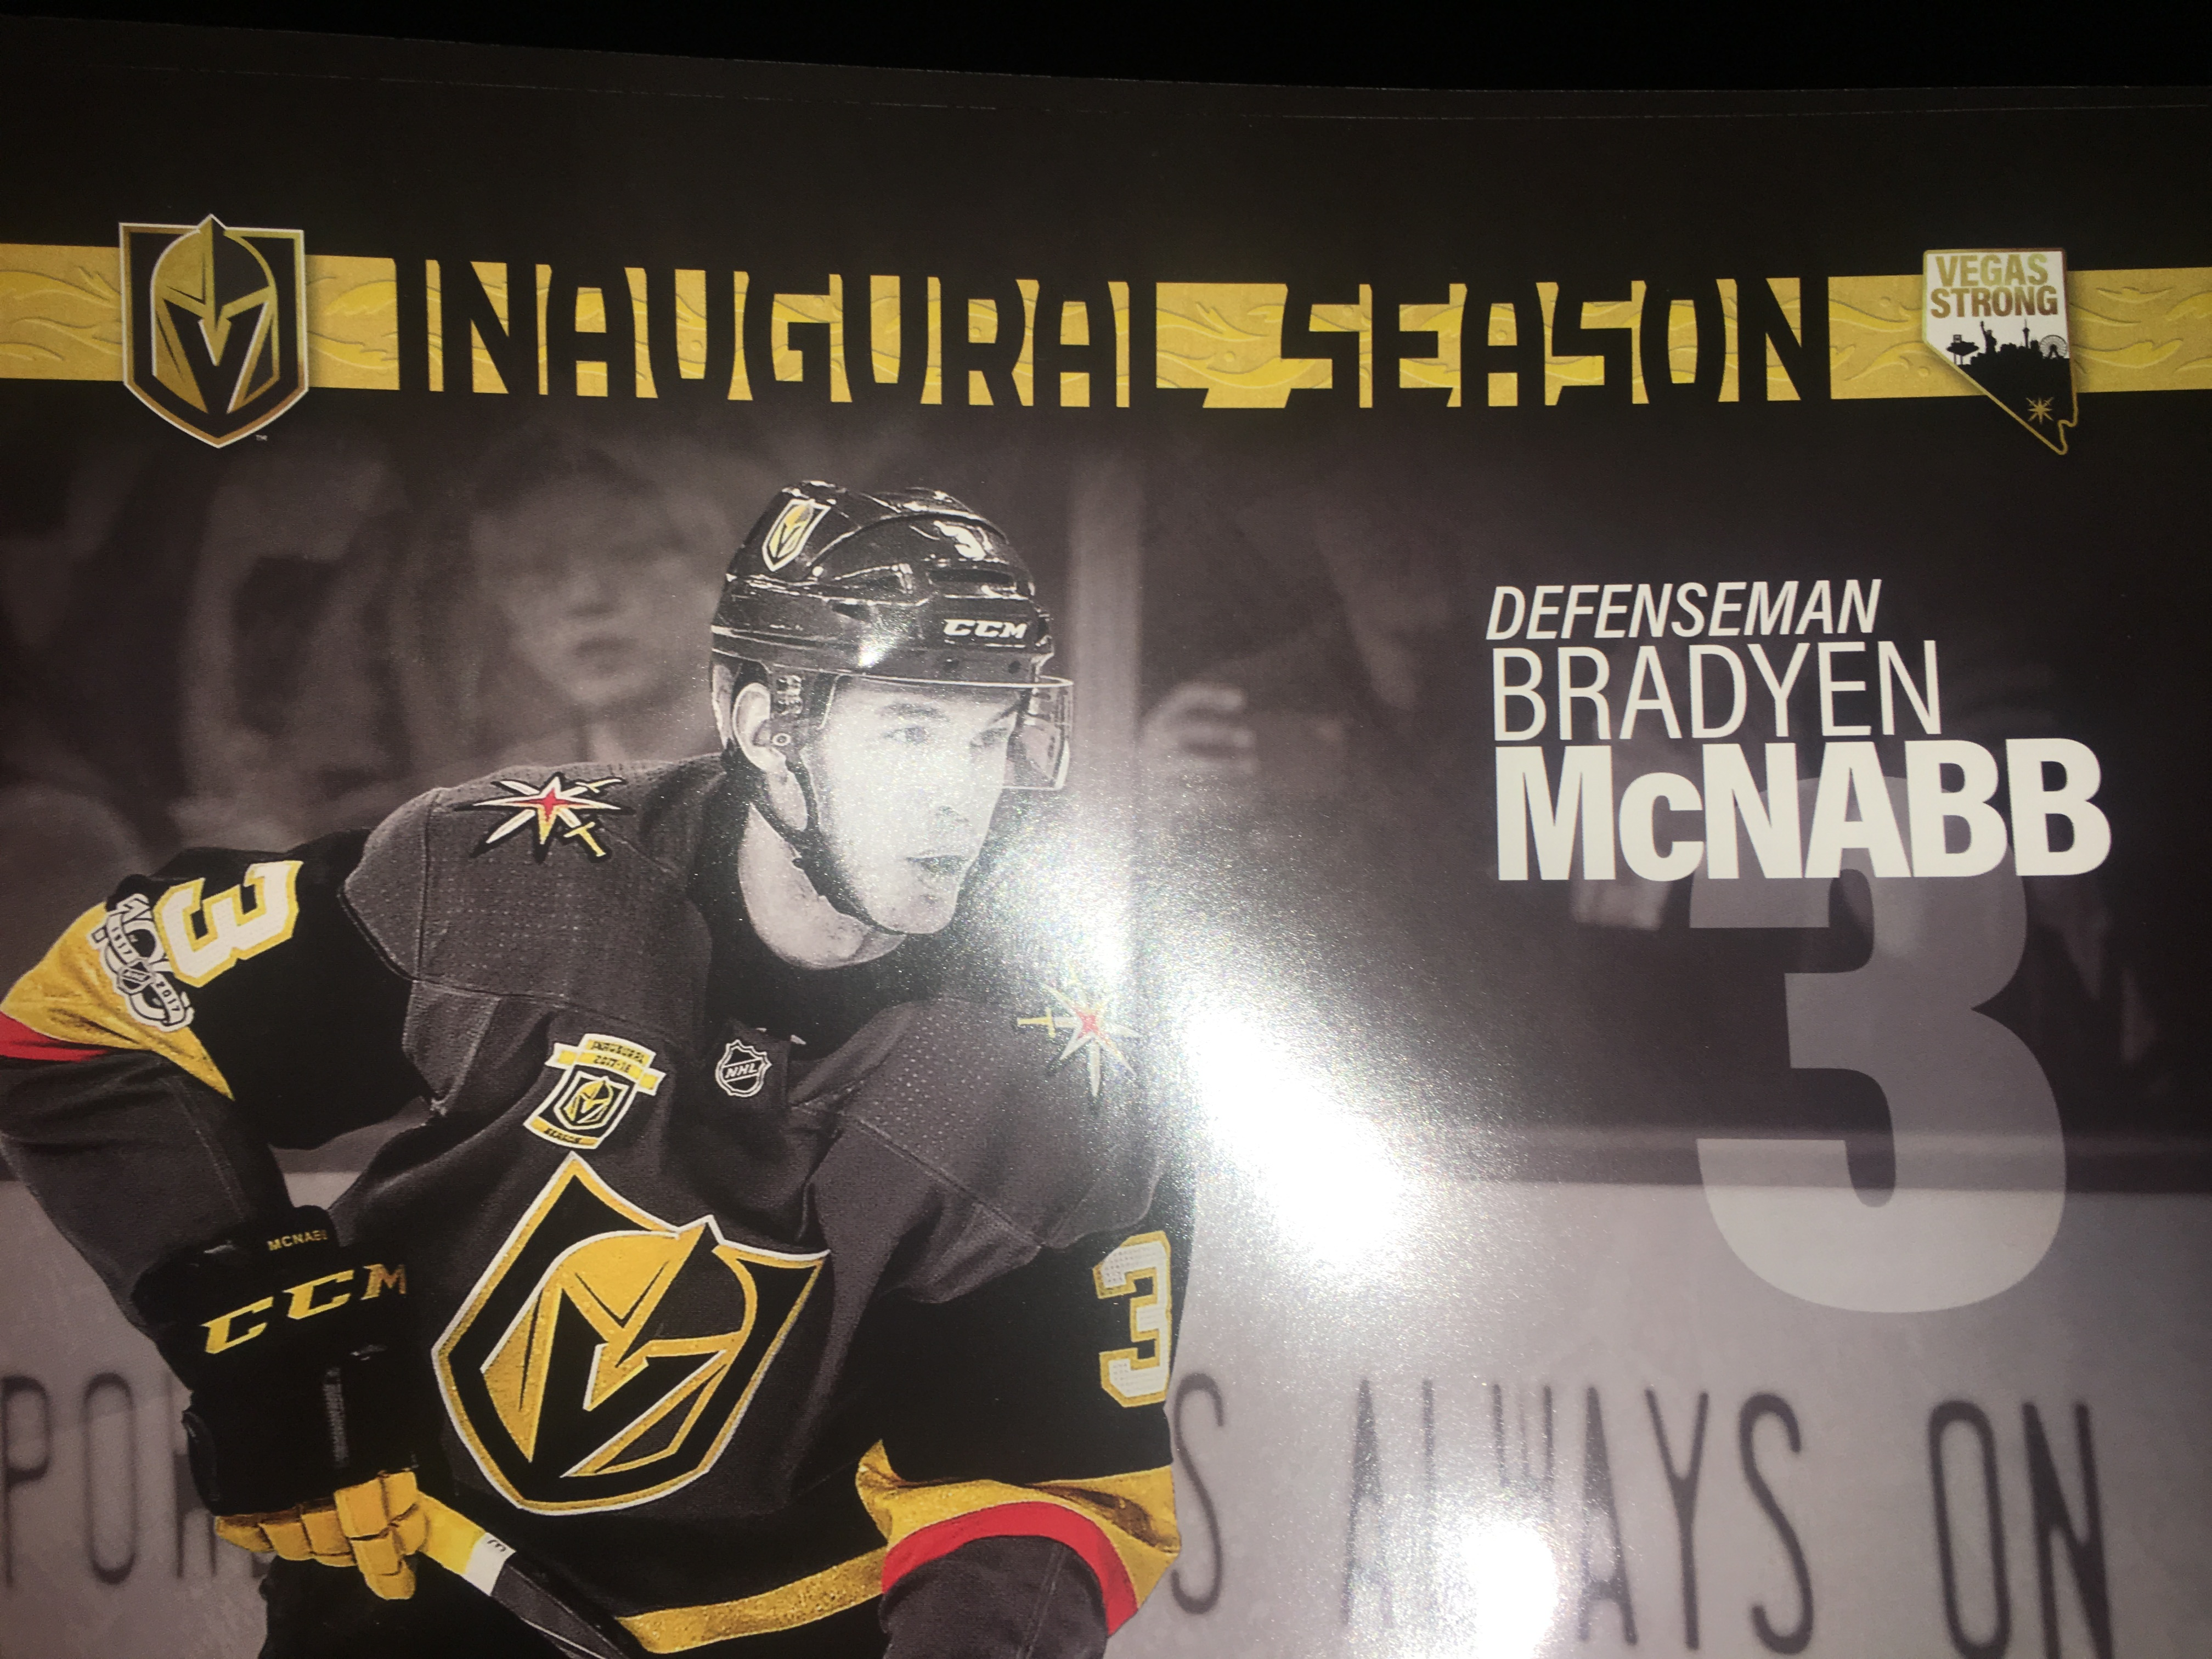 A Proofreader Didnt Catch The Spelling Of Brayden McNabb On Free Game Poster Tonight